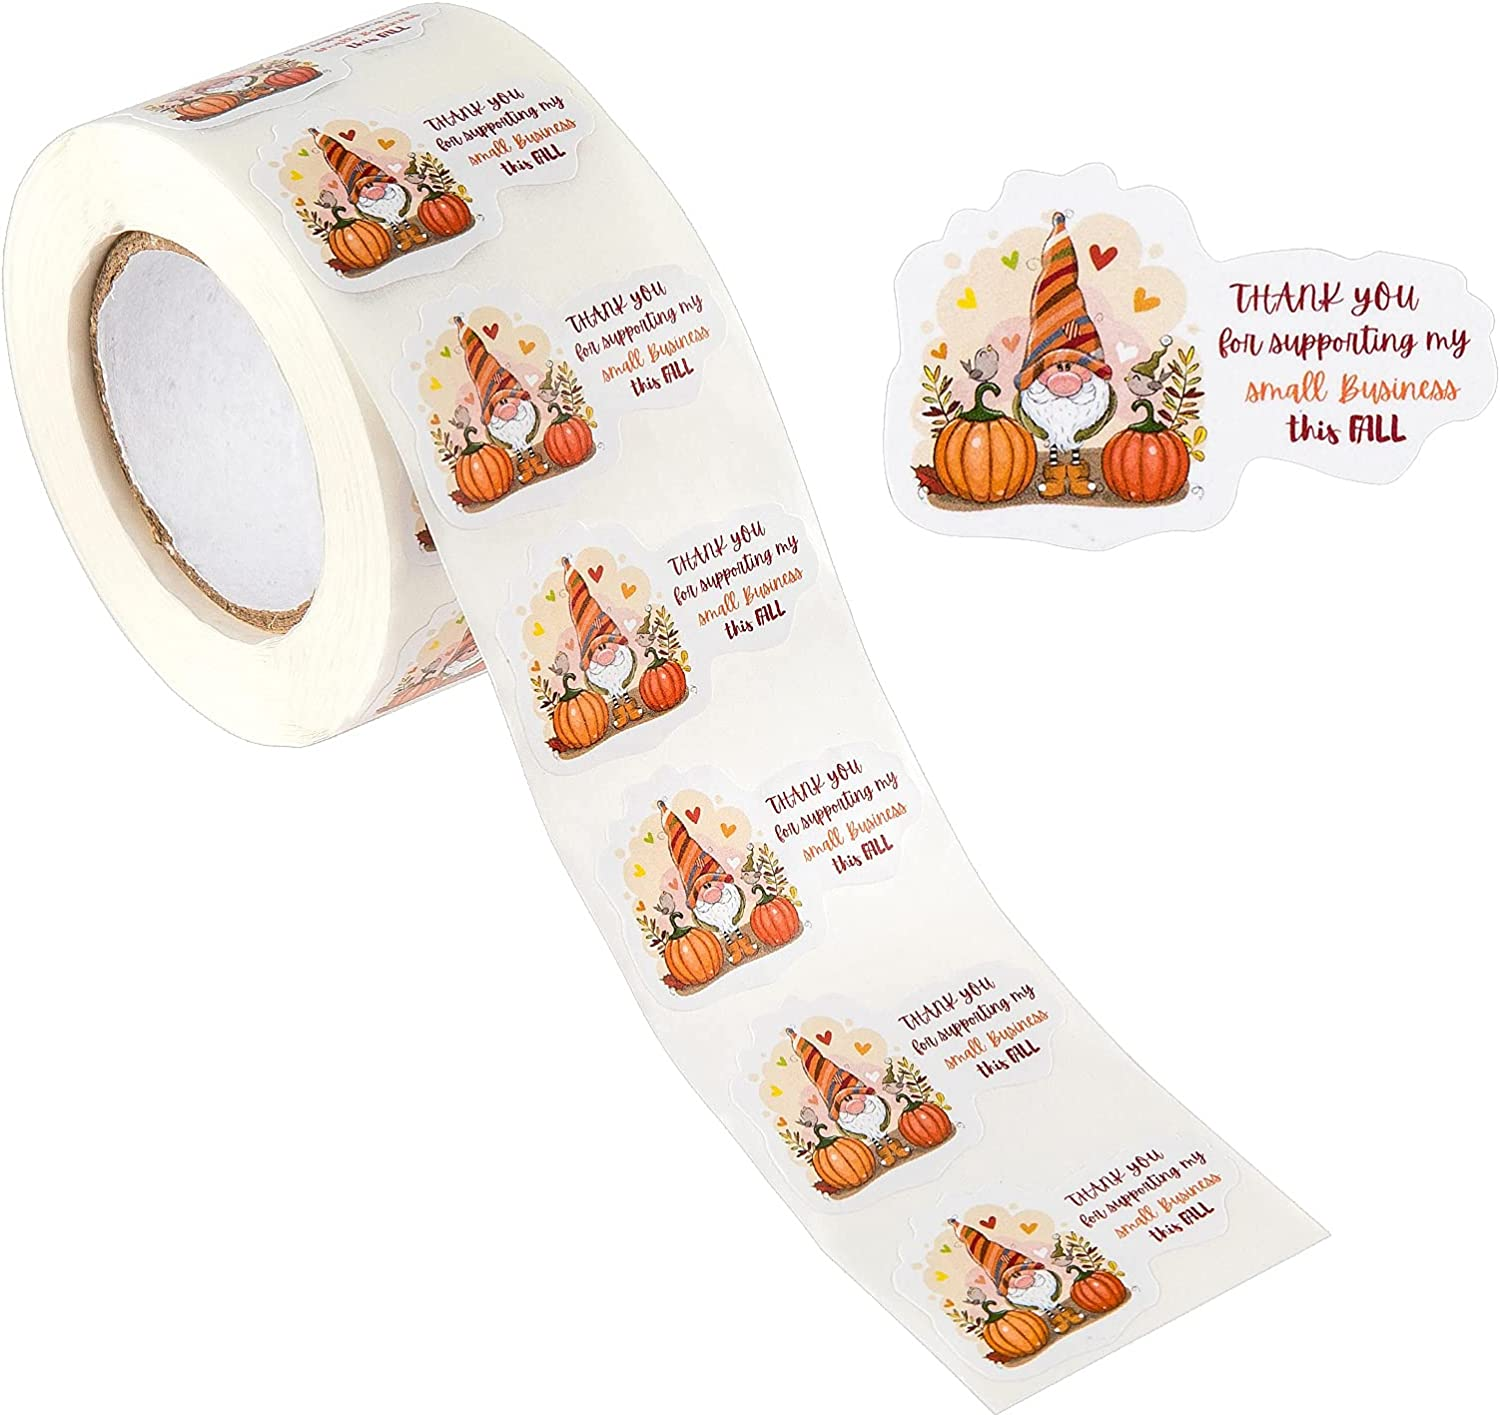 Thank You for Supporting My Small Business This Fall, Thank You Stickers Labels Happy Mail Shipping Stickers for Fall Thanksgiving Envelopes, Mailers, Gift Bags, Boxes, Packaging